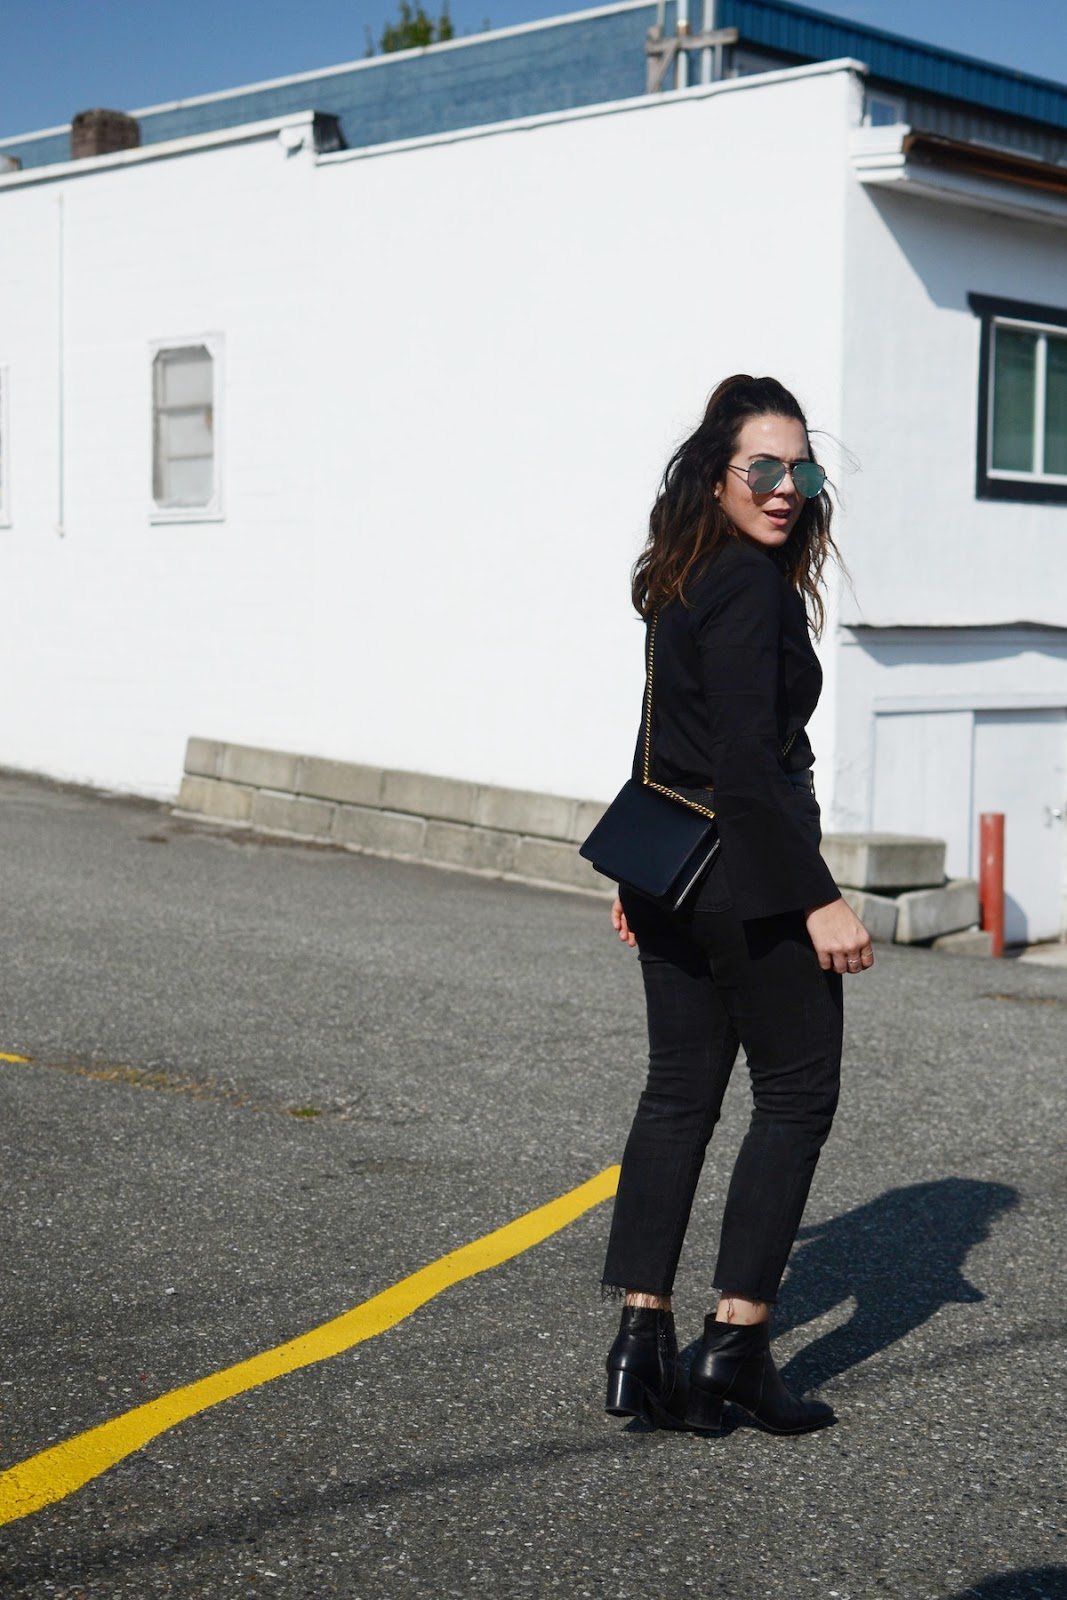 Gucci marmont belt le chateau blouse vancouver fashion blogger gucci marmont bag aleesha harris 7